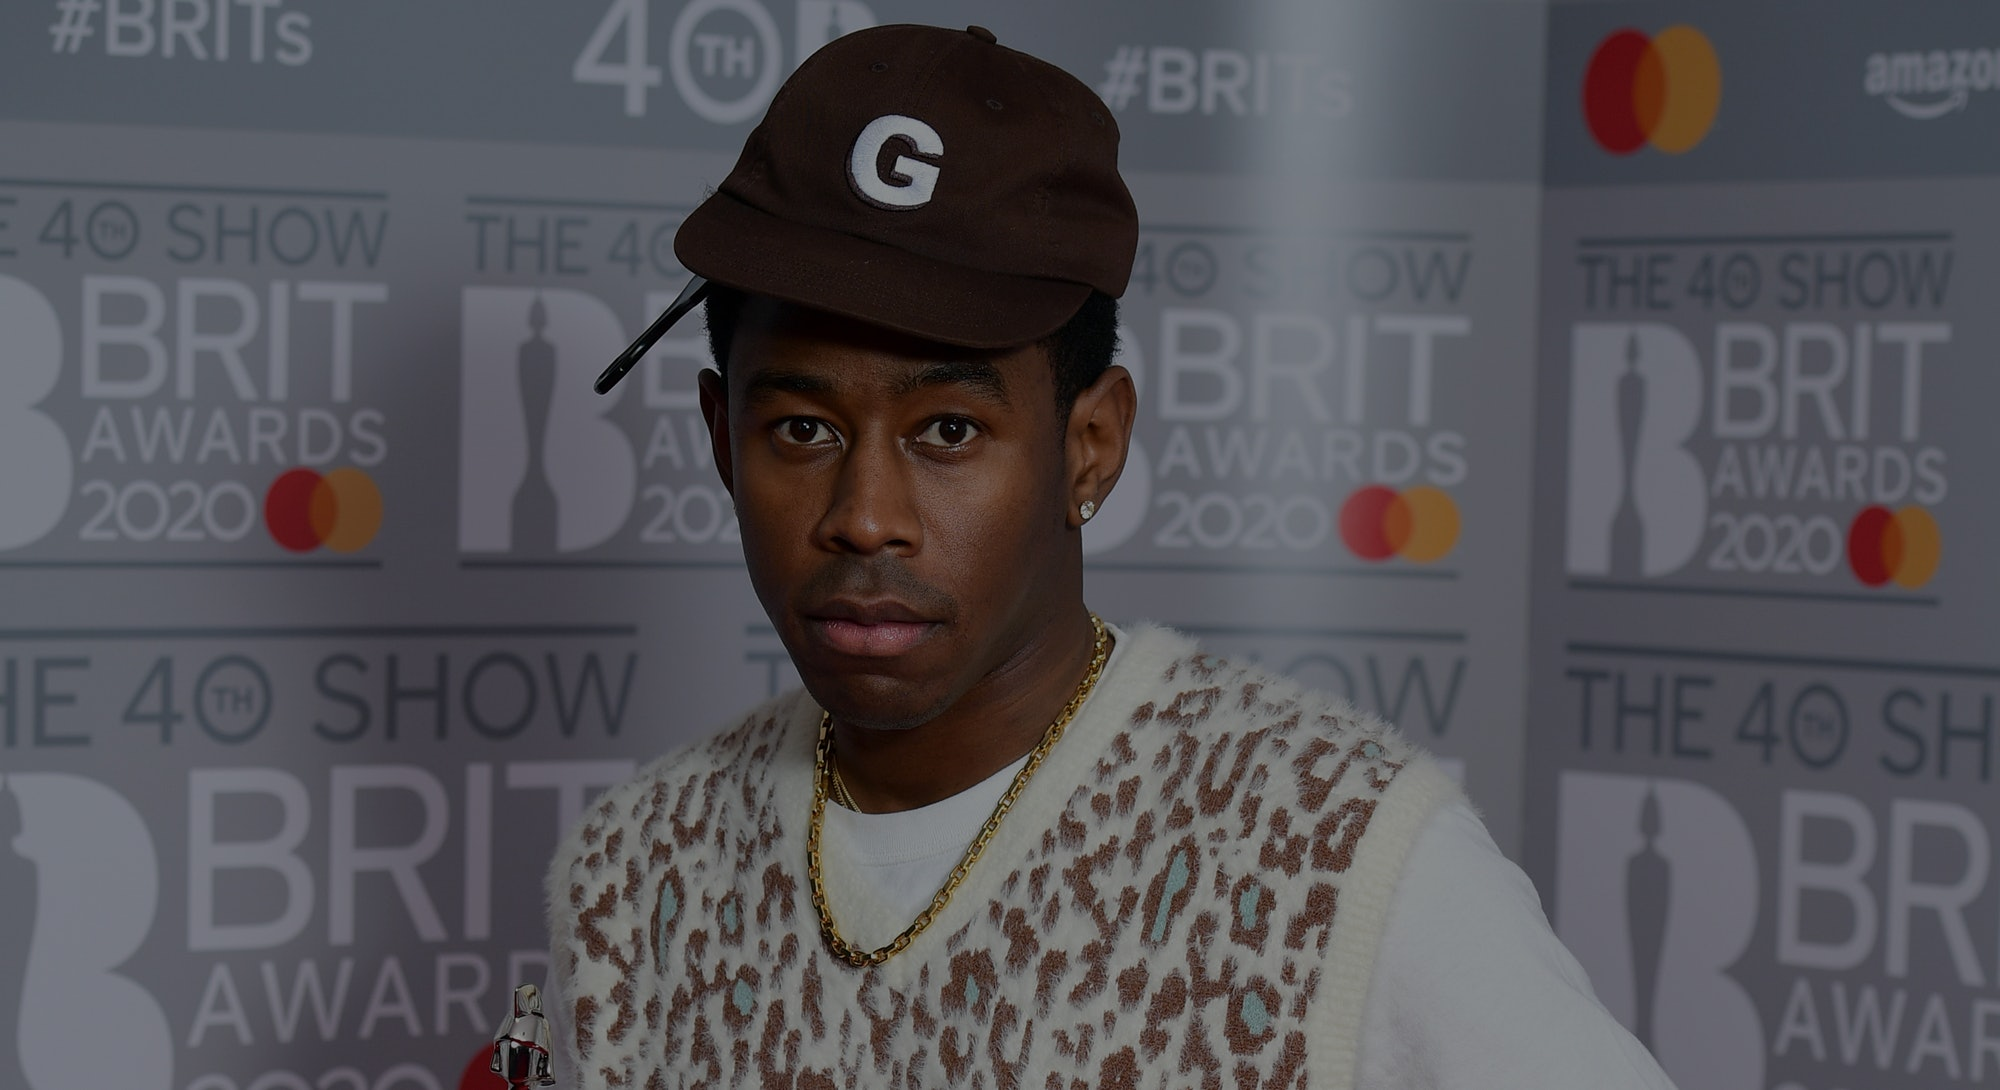 Tyler, The Creator with the Brit Award for International Male Solo Artist in the press room at the B...